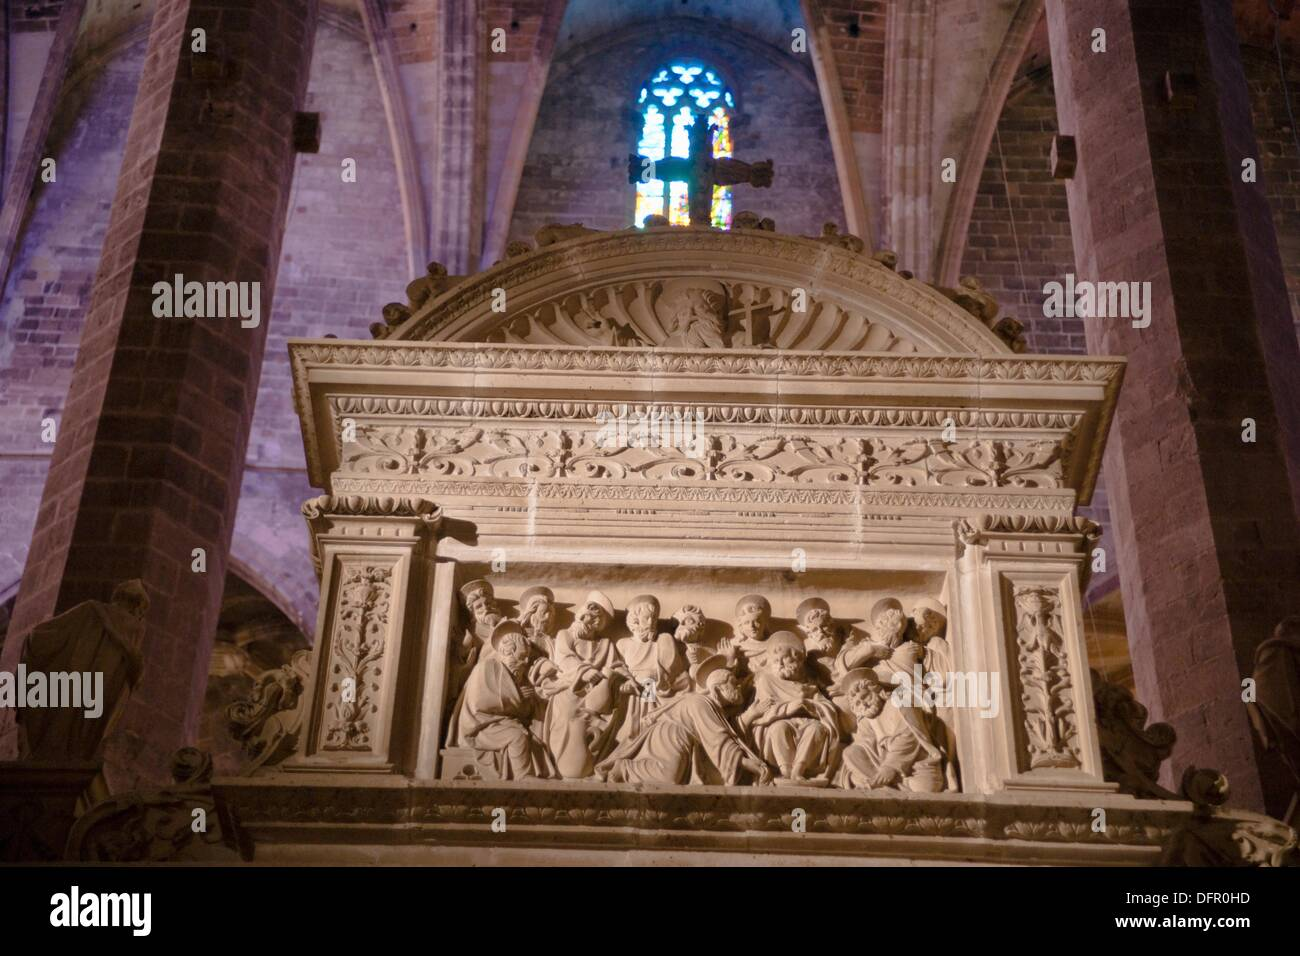 Cathedral XIII-XX centuries Mallorca Palma Mallorca Spain Balearic Islands - Stock Image